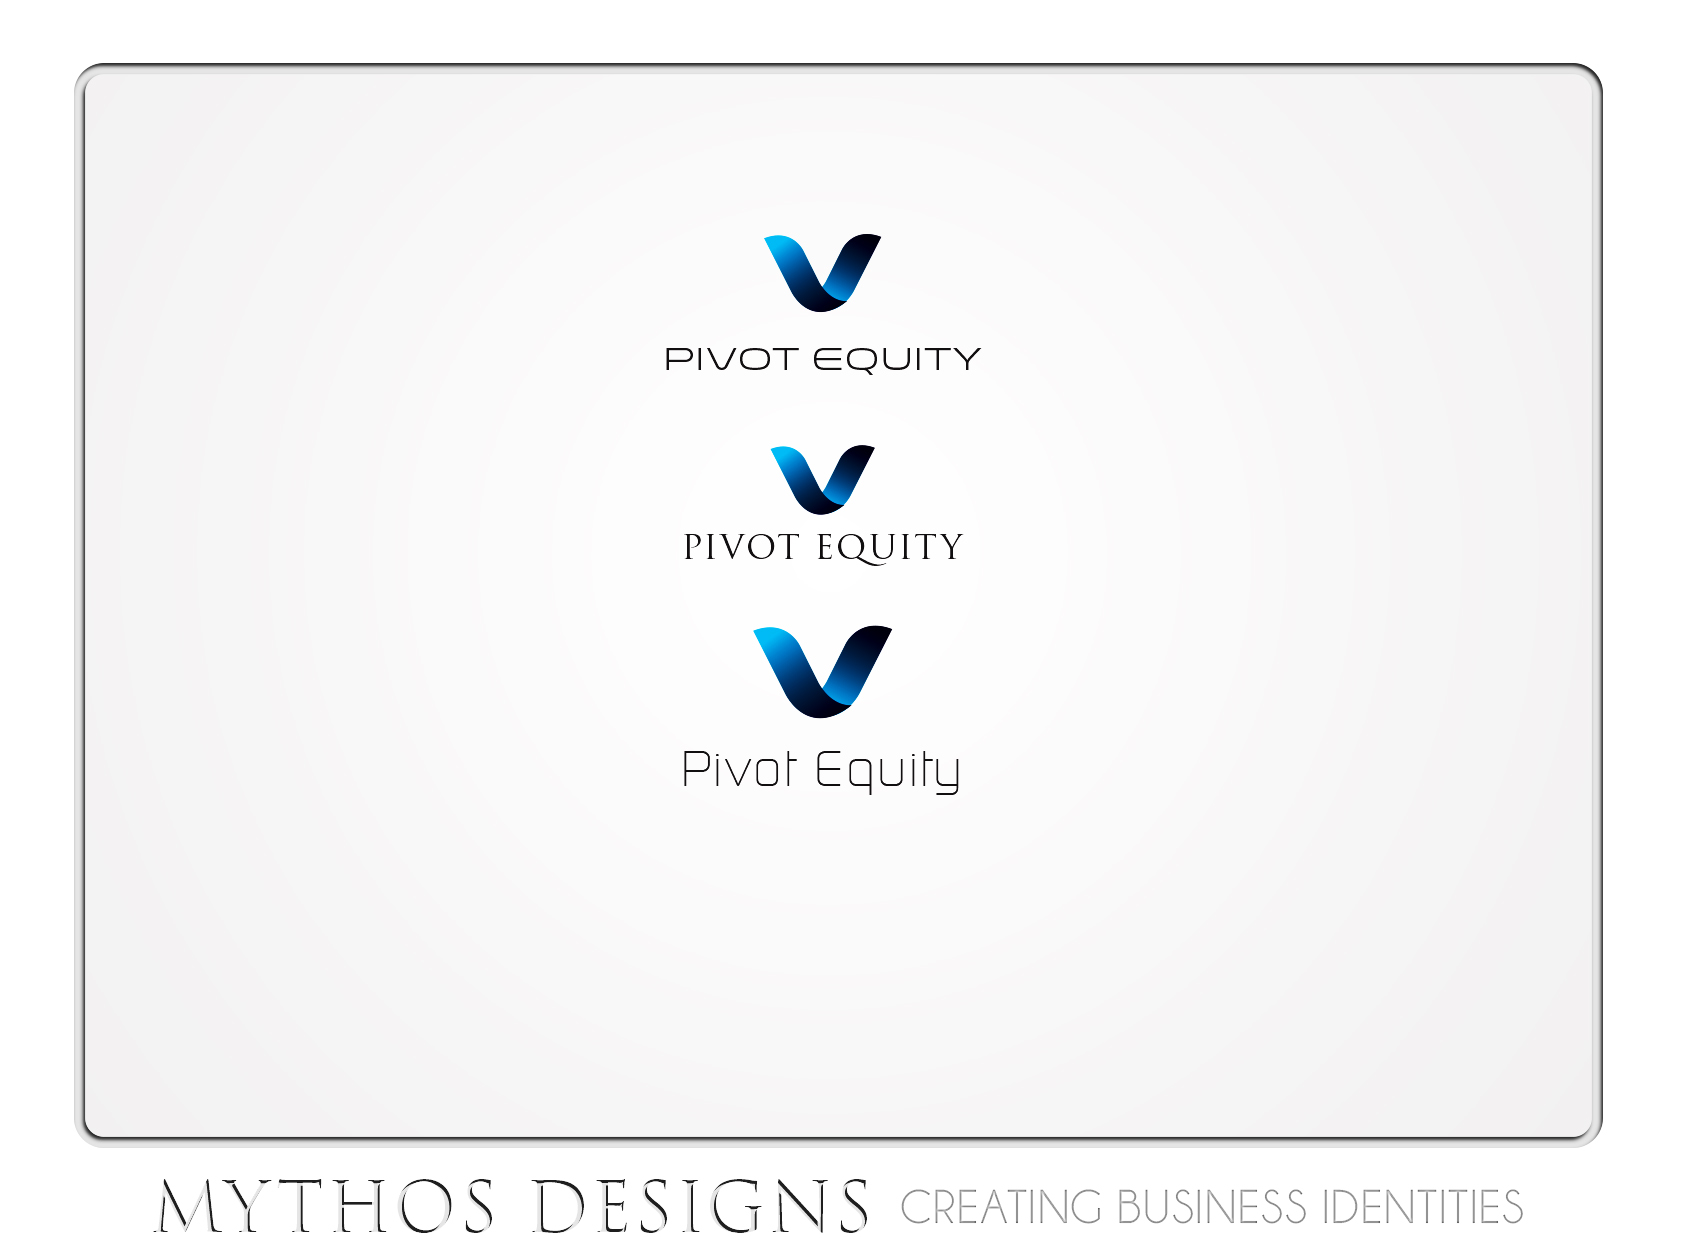 Logo Design by Mythos Designs - Entry No. 55 in the Logo Design Contest Unique Logo Design Wanted for Pivot Equity Advisors.